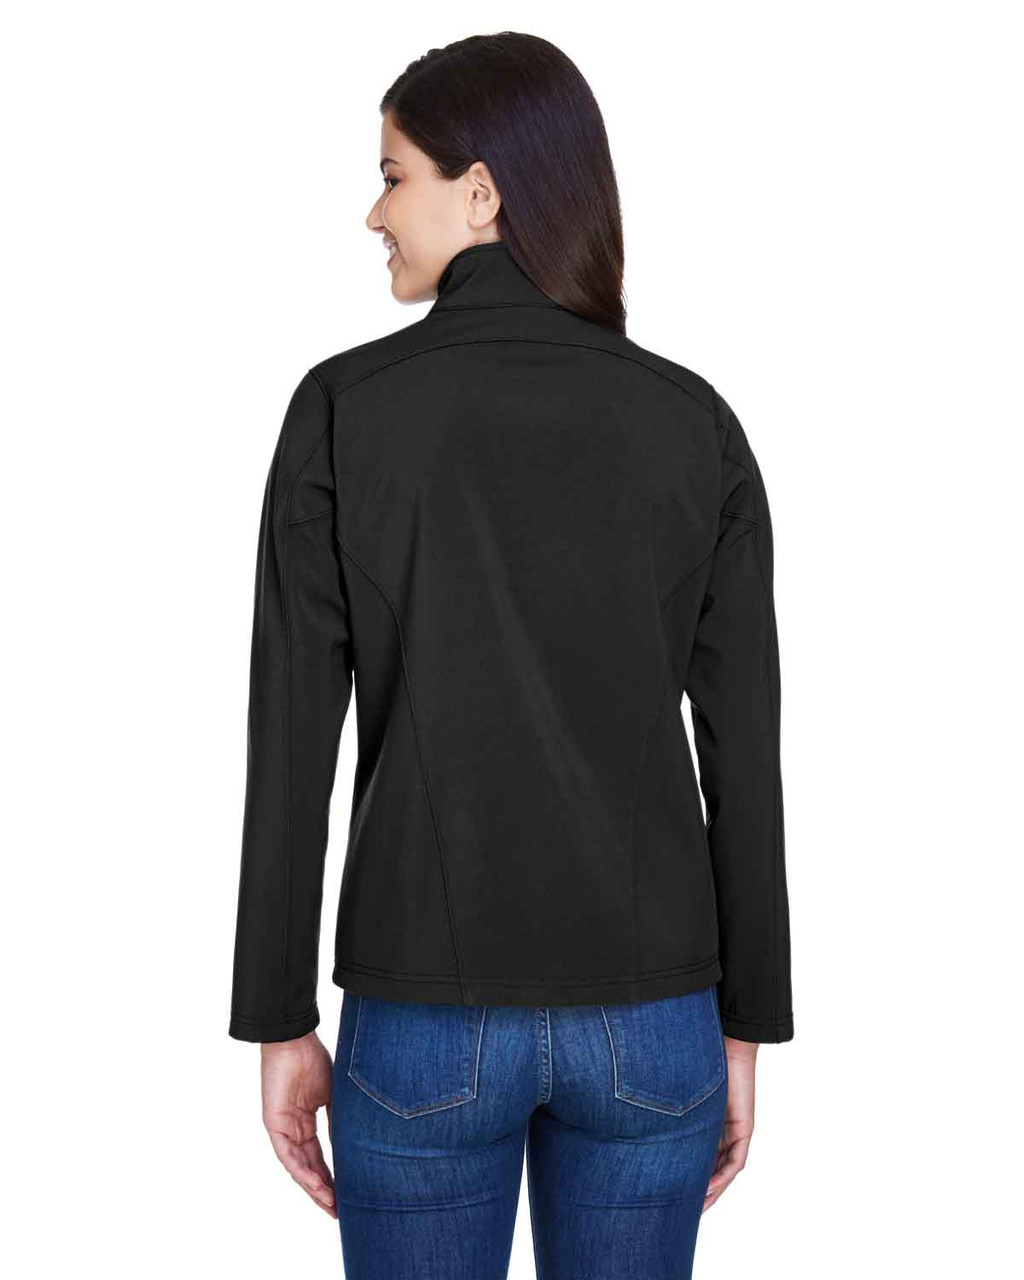 Black - Back, 78184 Core 365 Ladies' Fleece Soft Shell Jacket | Blankclothing.ca